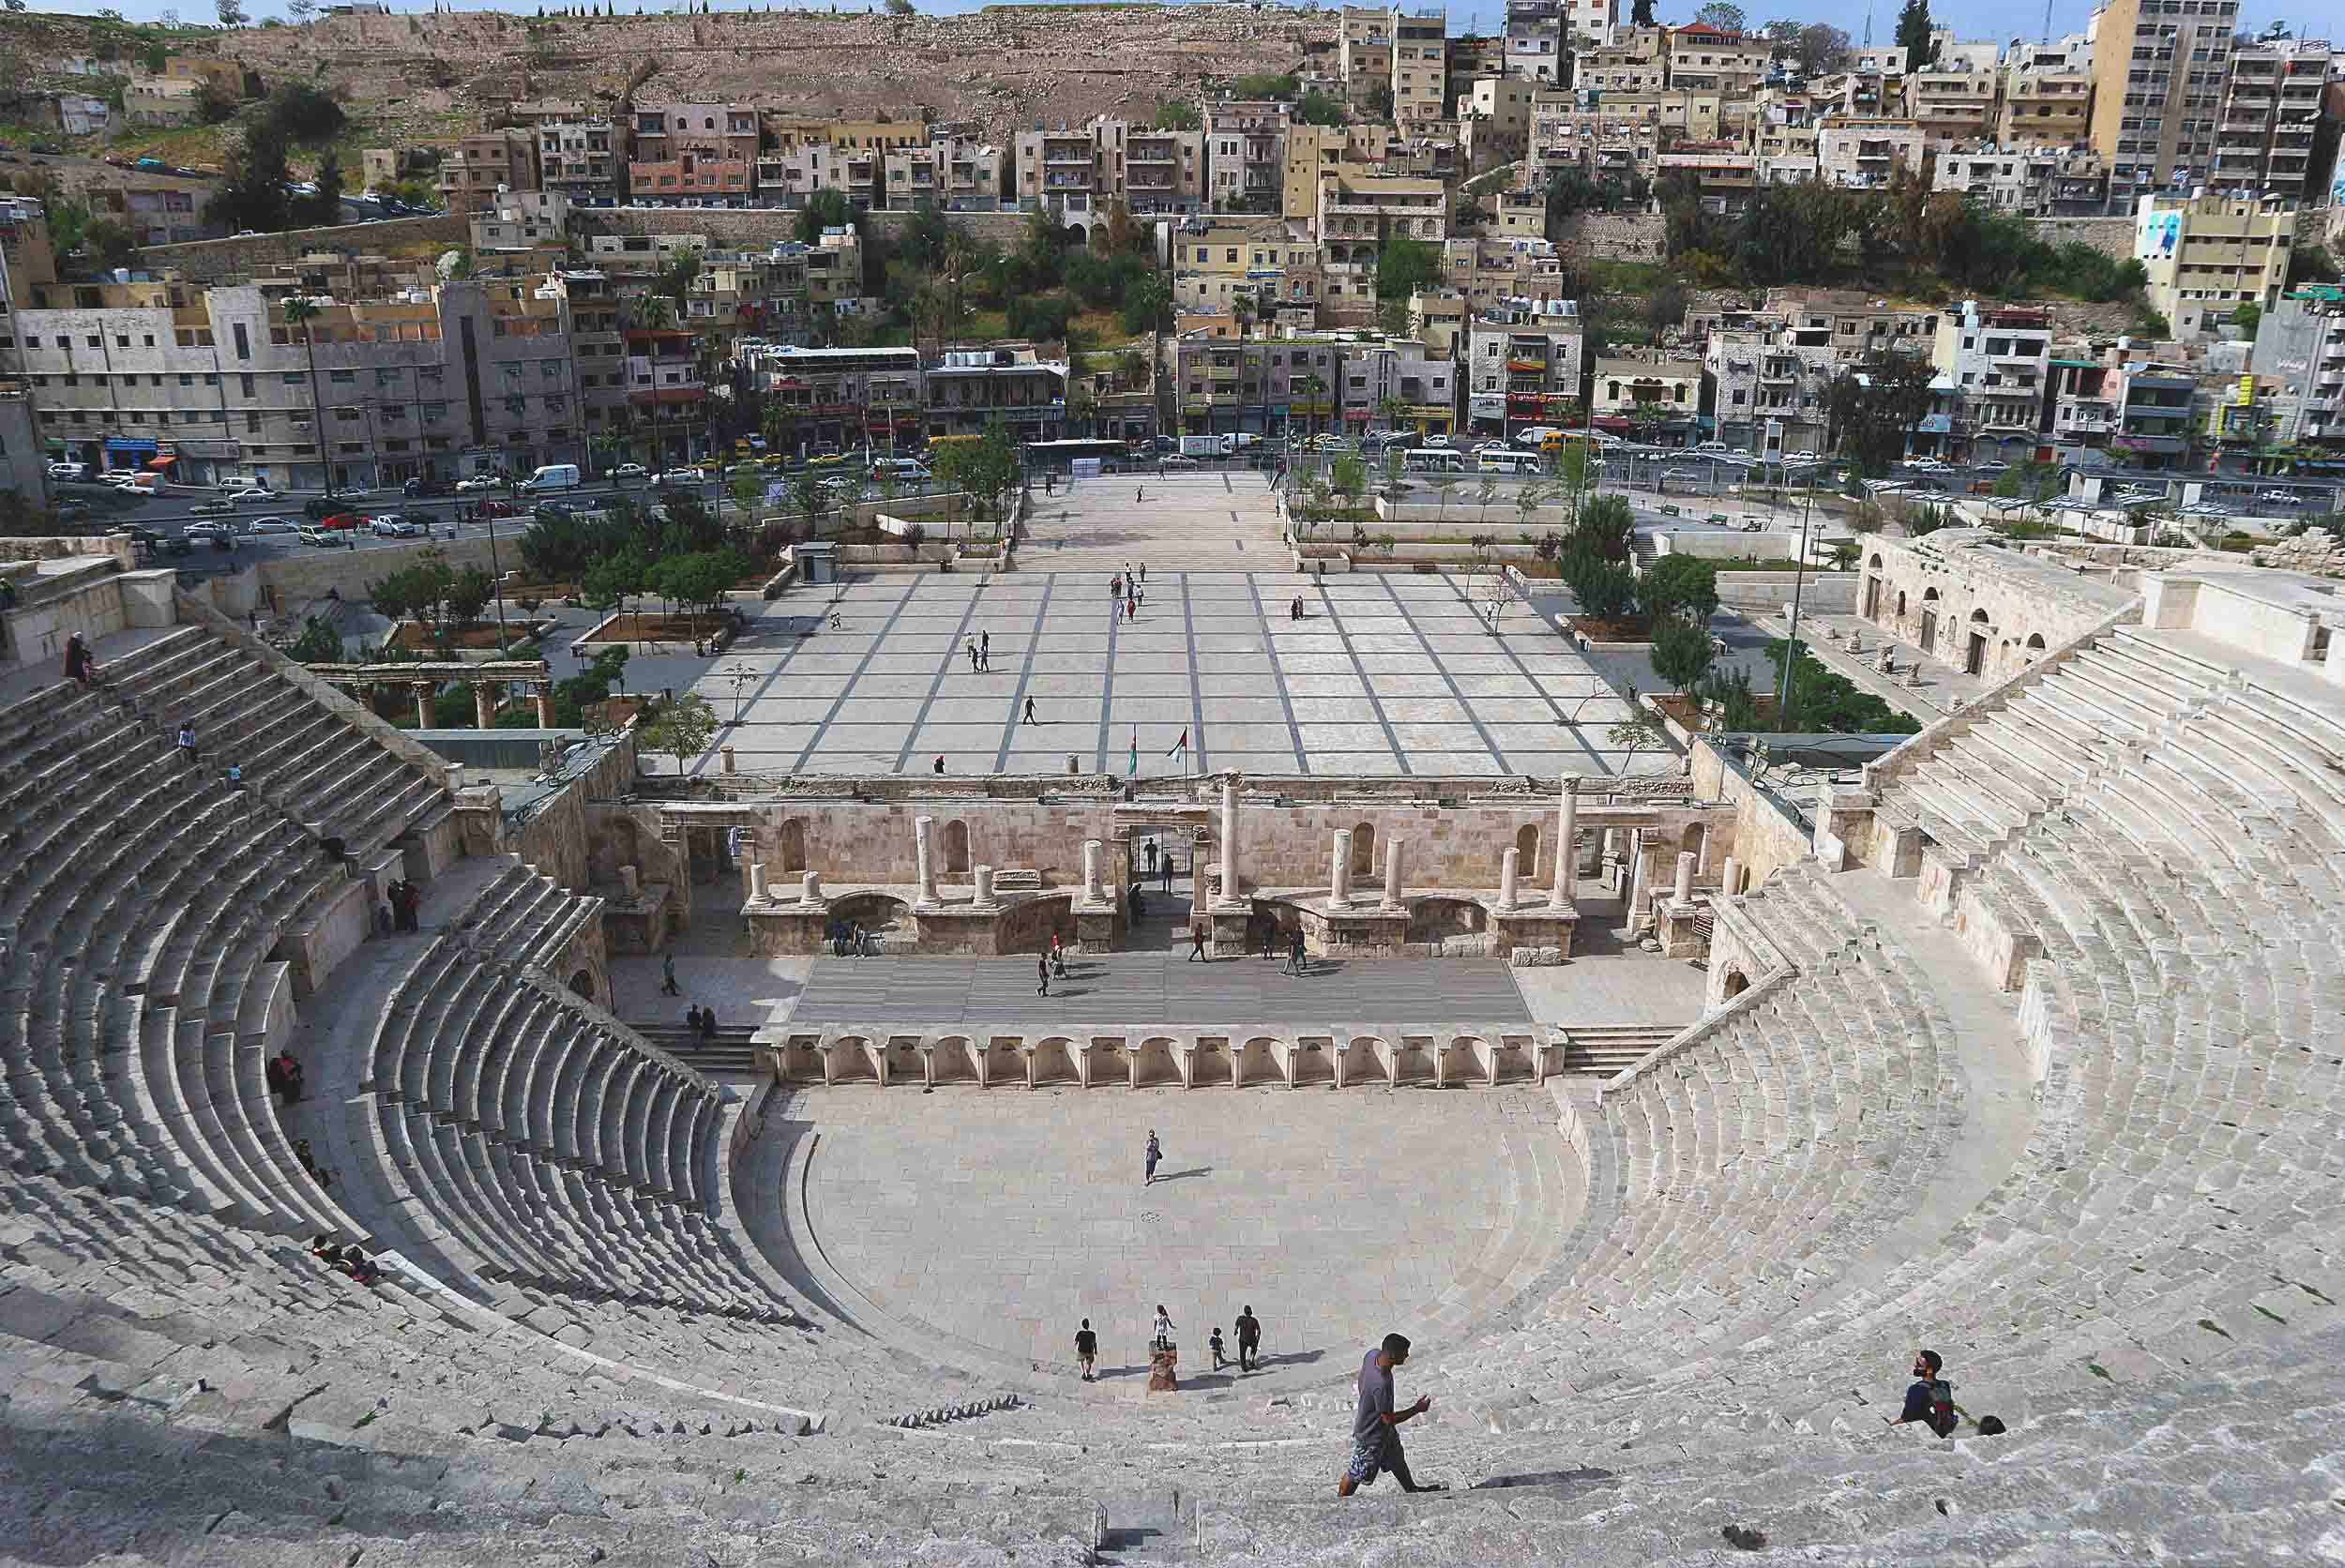 The ancient Roman Amphitheatre